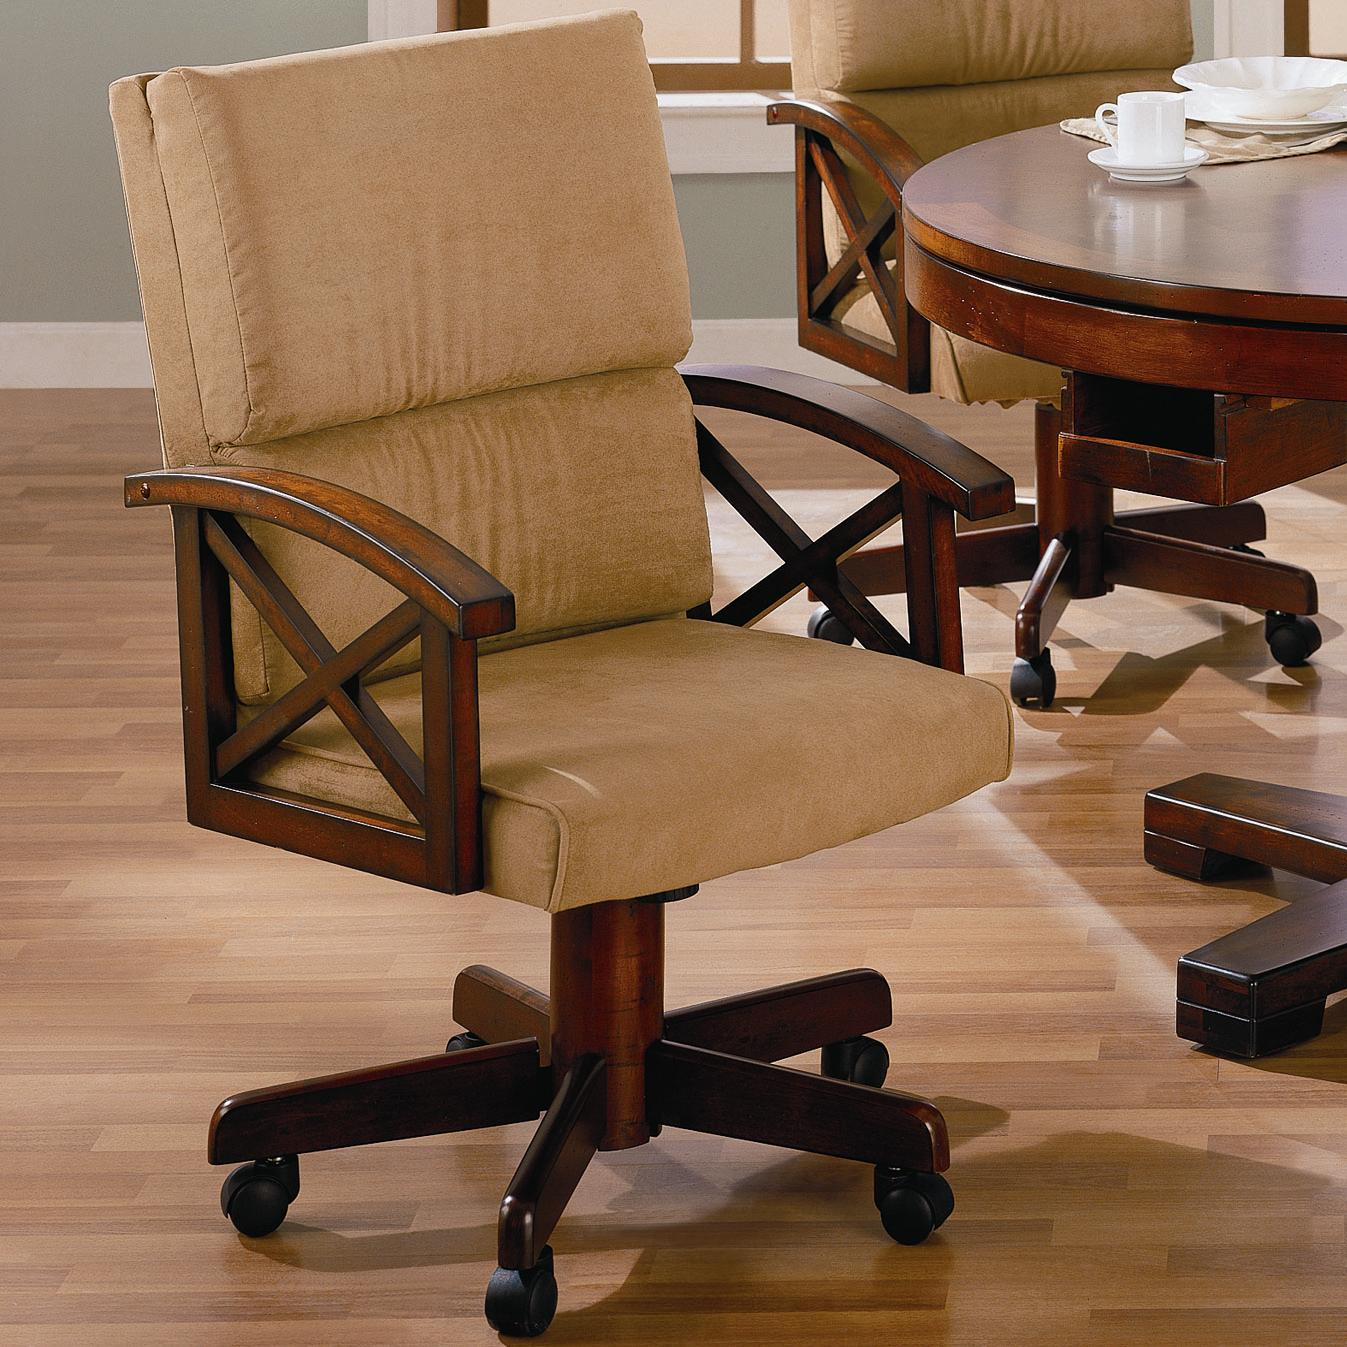 Coaster Marietta Upholstered Arm Game Chair - Del Sol ...